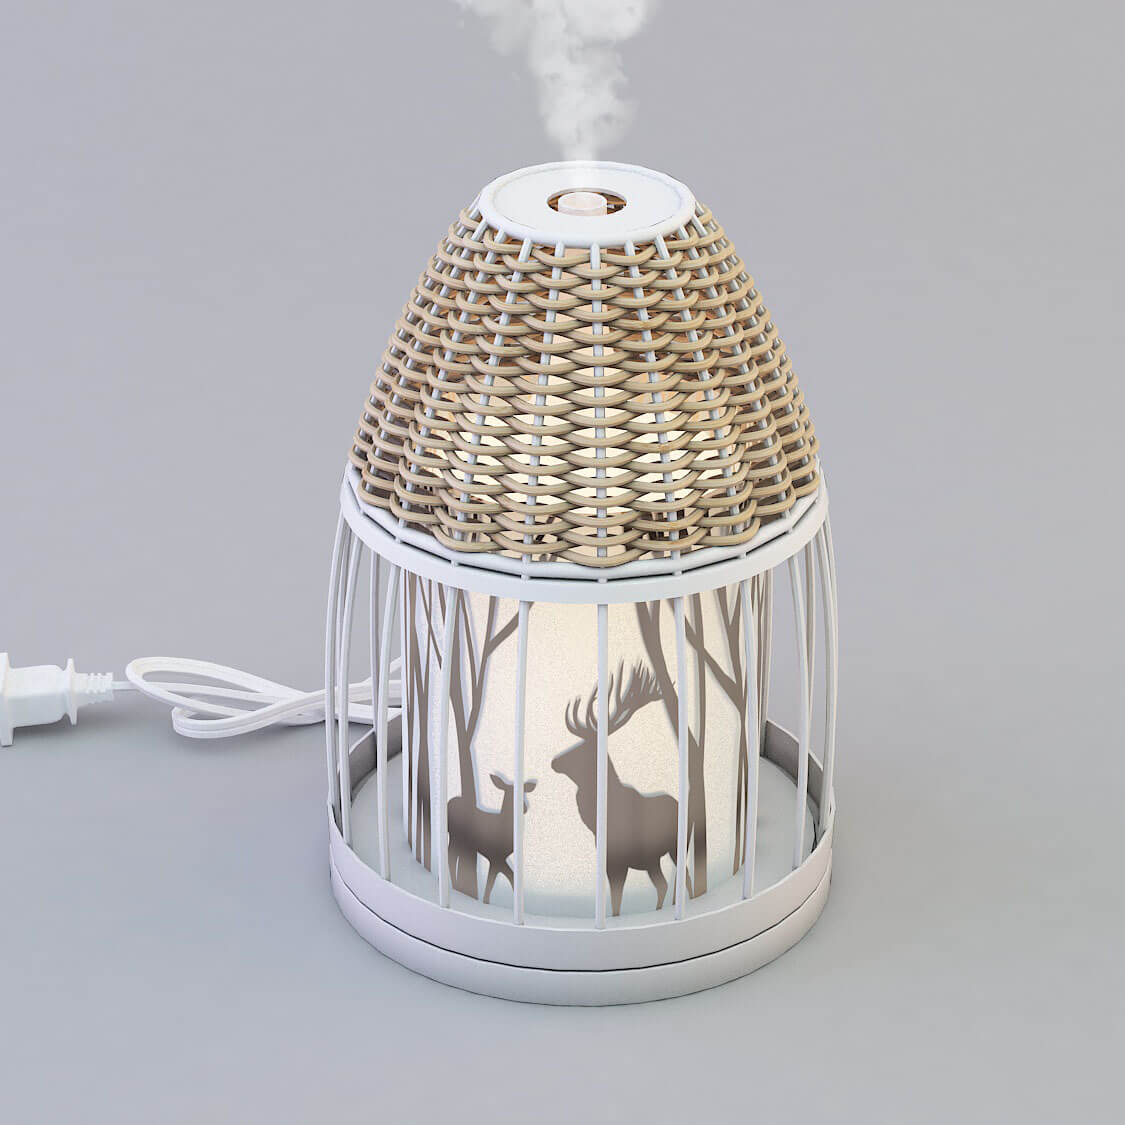 Marketing Metal Material Aroma Essential Oil Diffuser GLEA2122M-Z